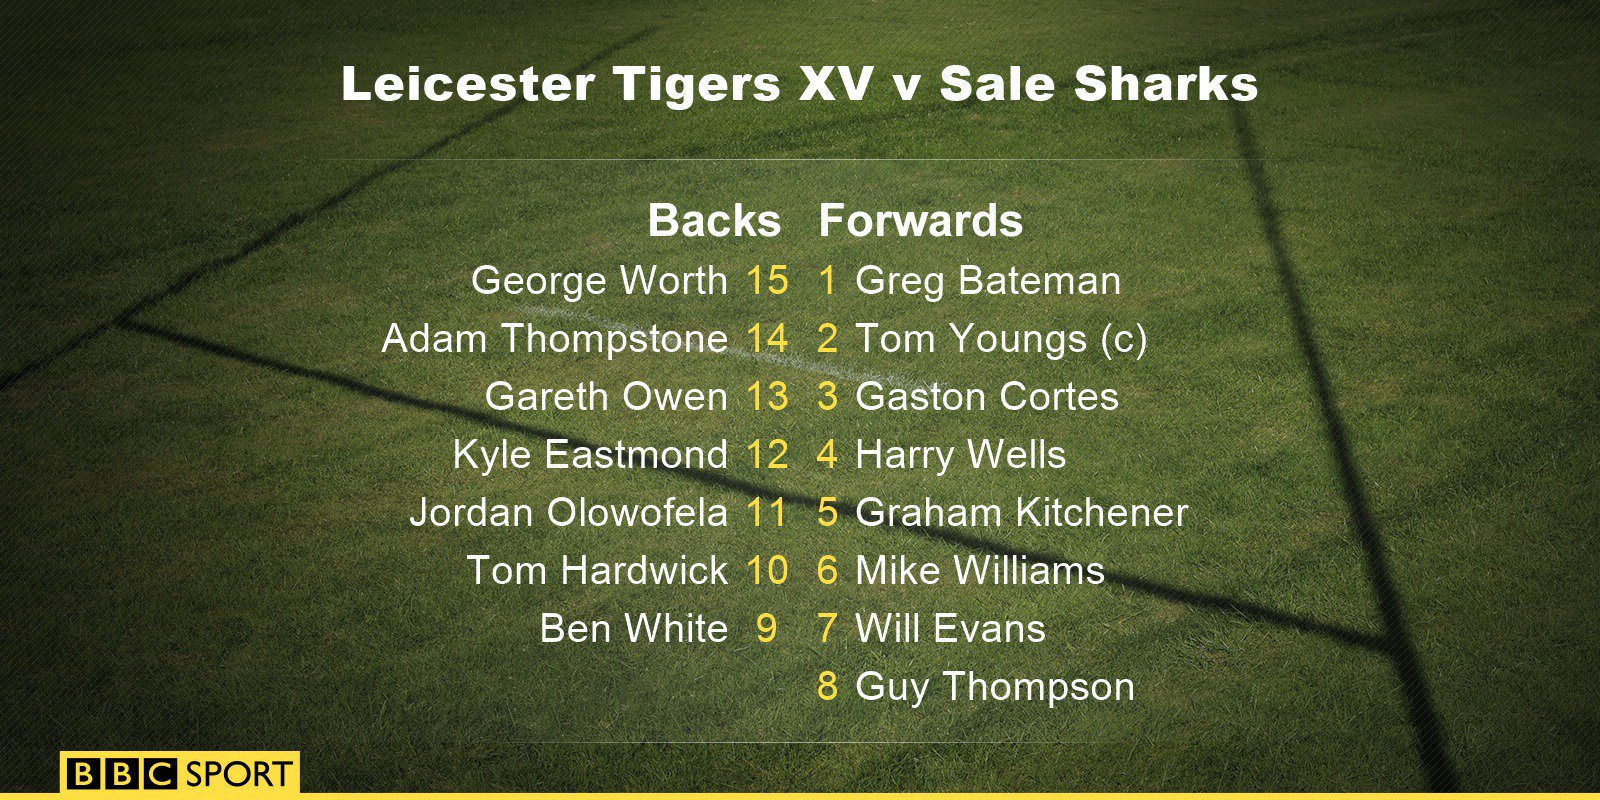 Tom Youngs is back in the Leicester Tigers team for their Premiership Cup tie against Sale.  There is a new look to their forward pack too, after losses to Saracens and Worcester in the competition. https://t.co/WKdphArKMY